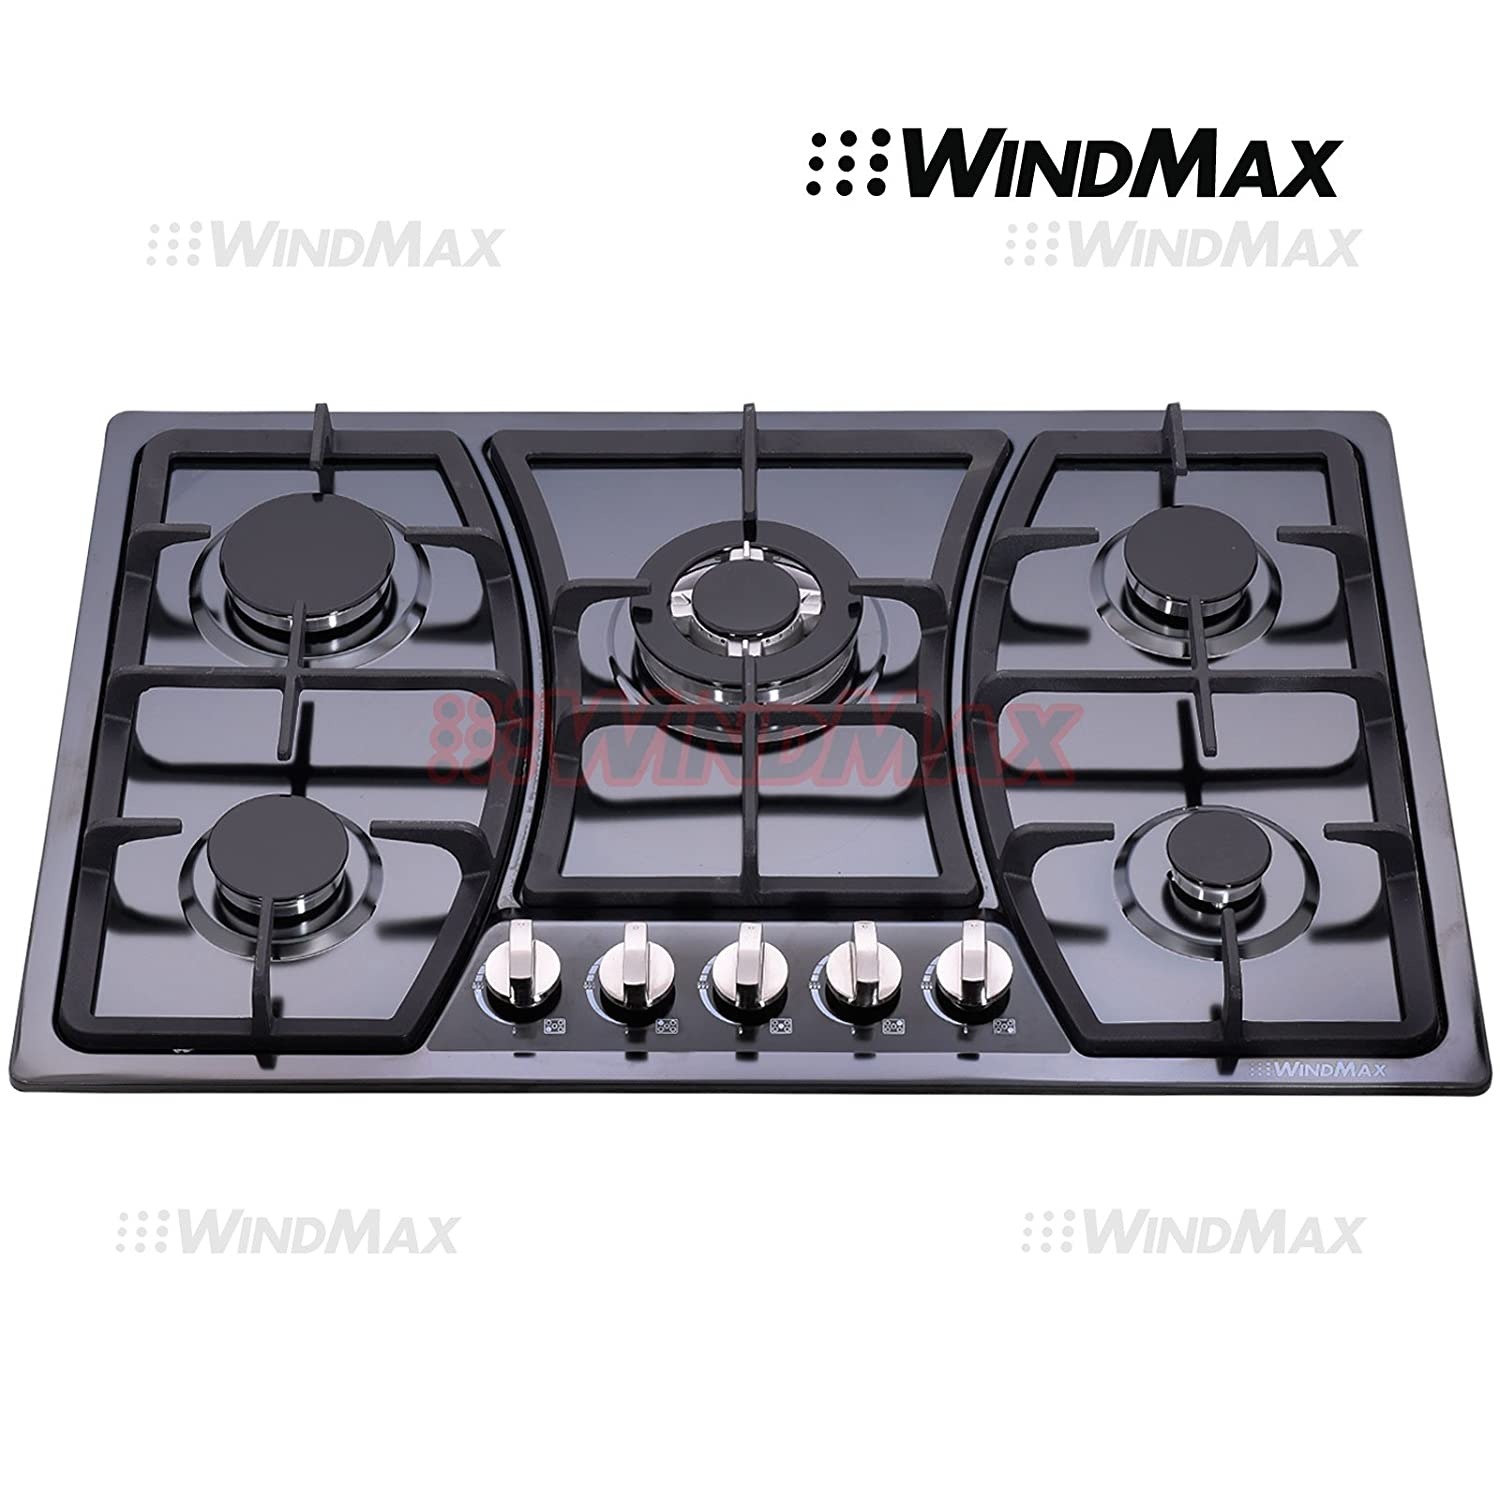 Great Amazon.com: Windmax 30 In Black Titanium Stainless Steel 5 Burners Built In  Stoves NG/LPG Cooktop Cooker: Appliances